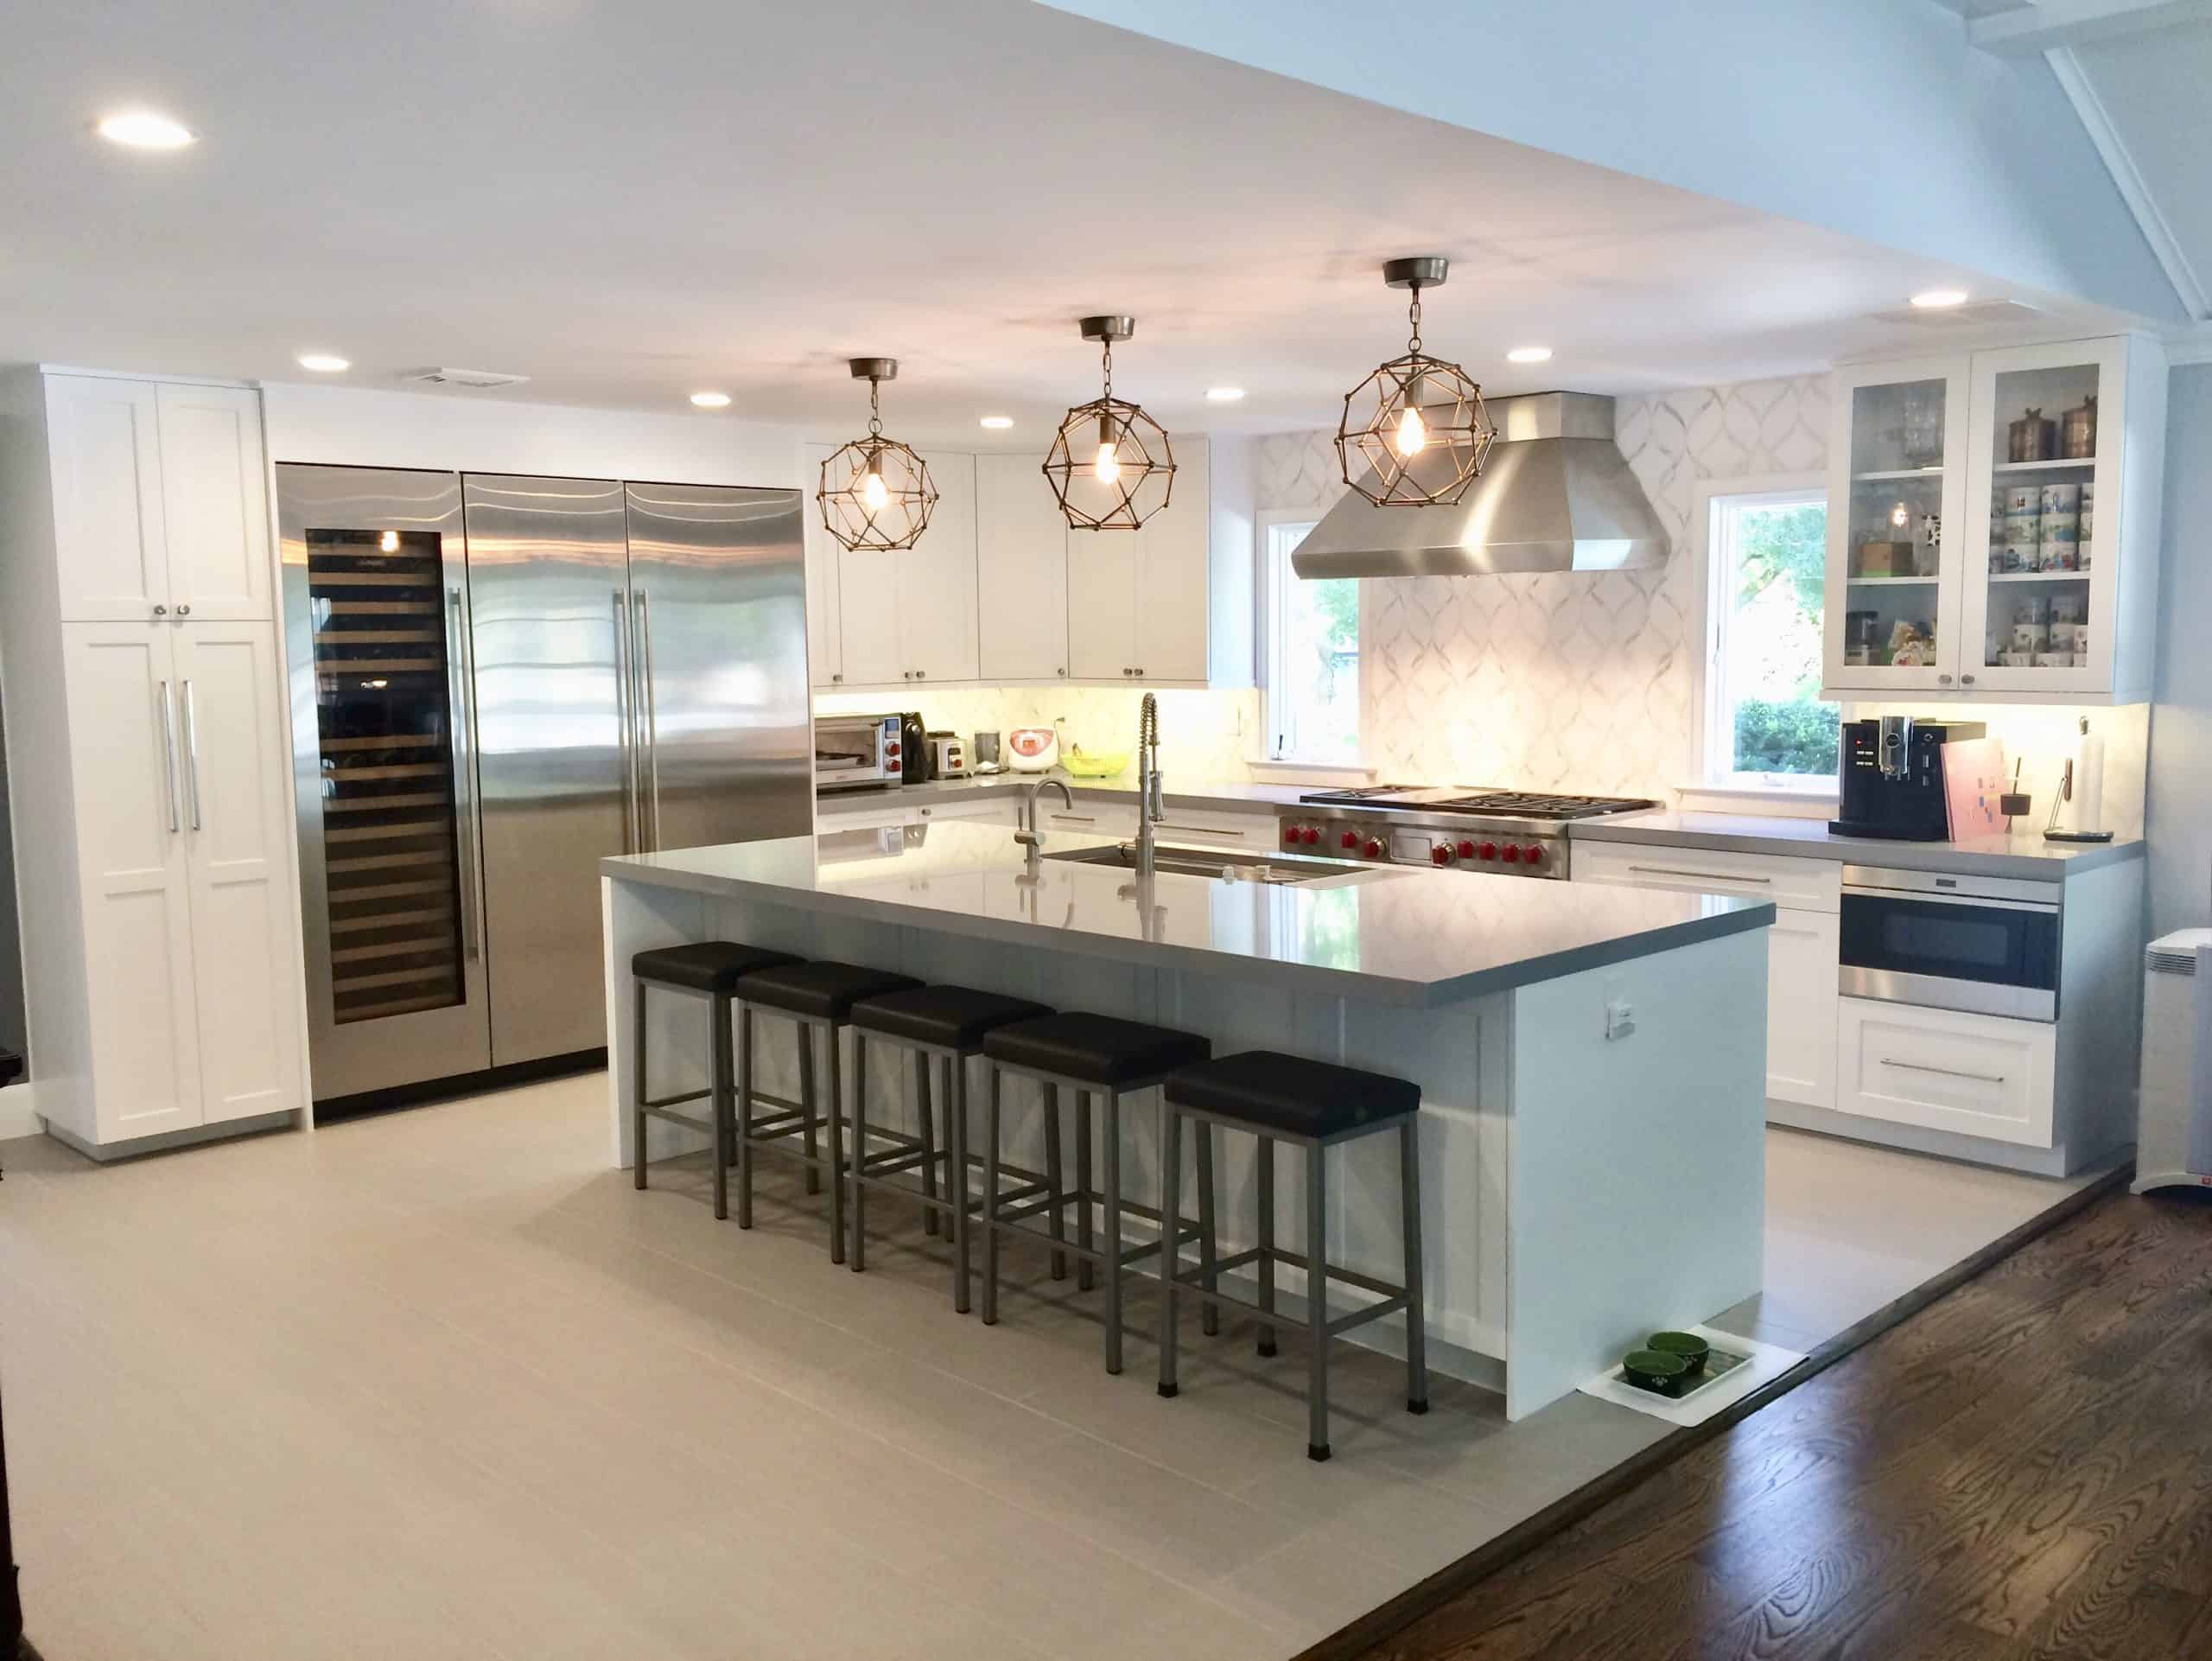 Building a kitchen island yourself